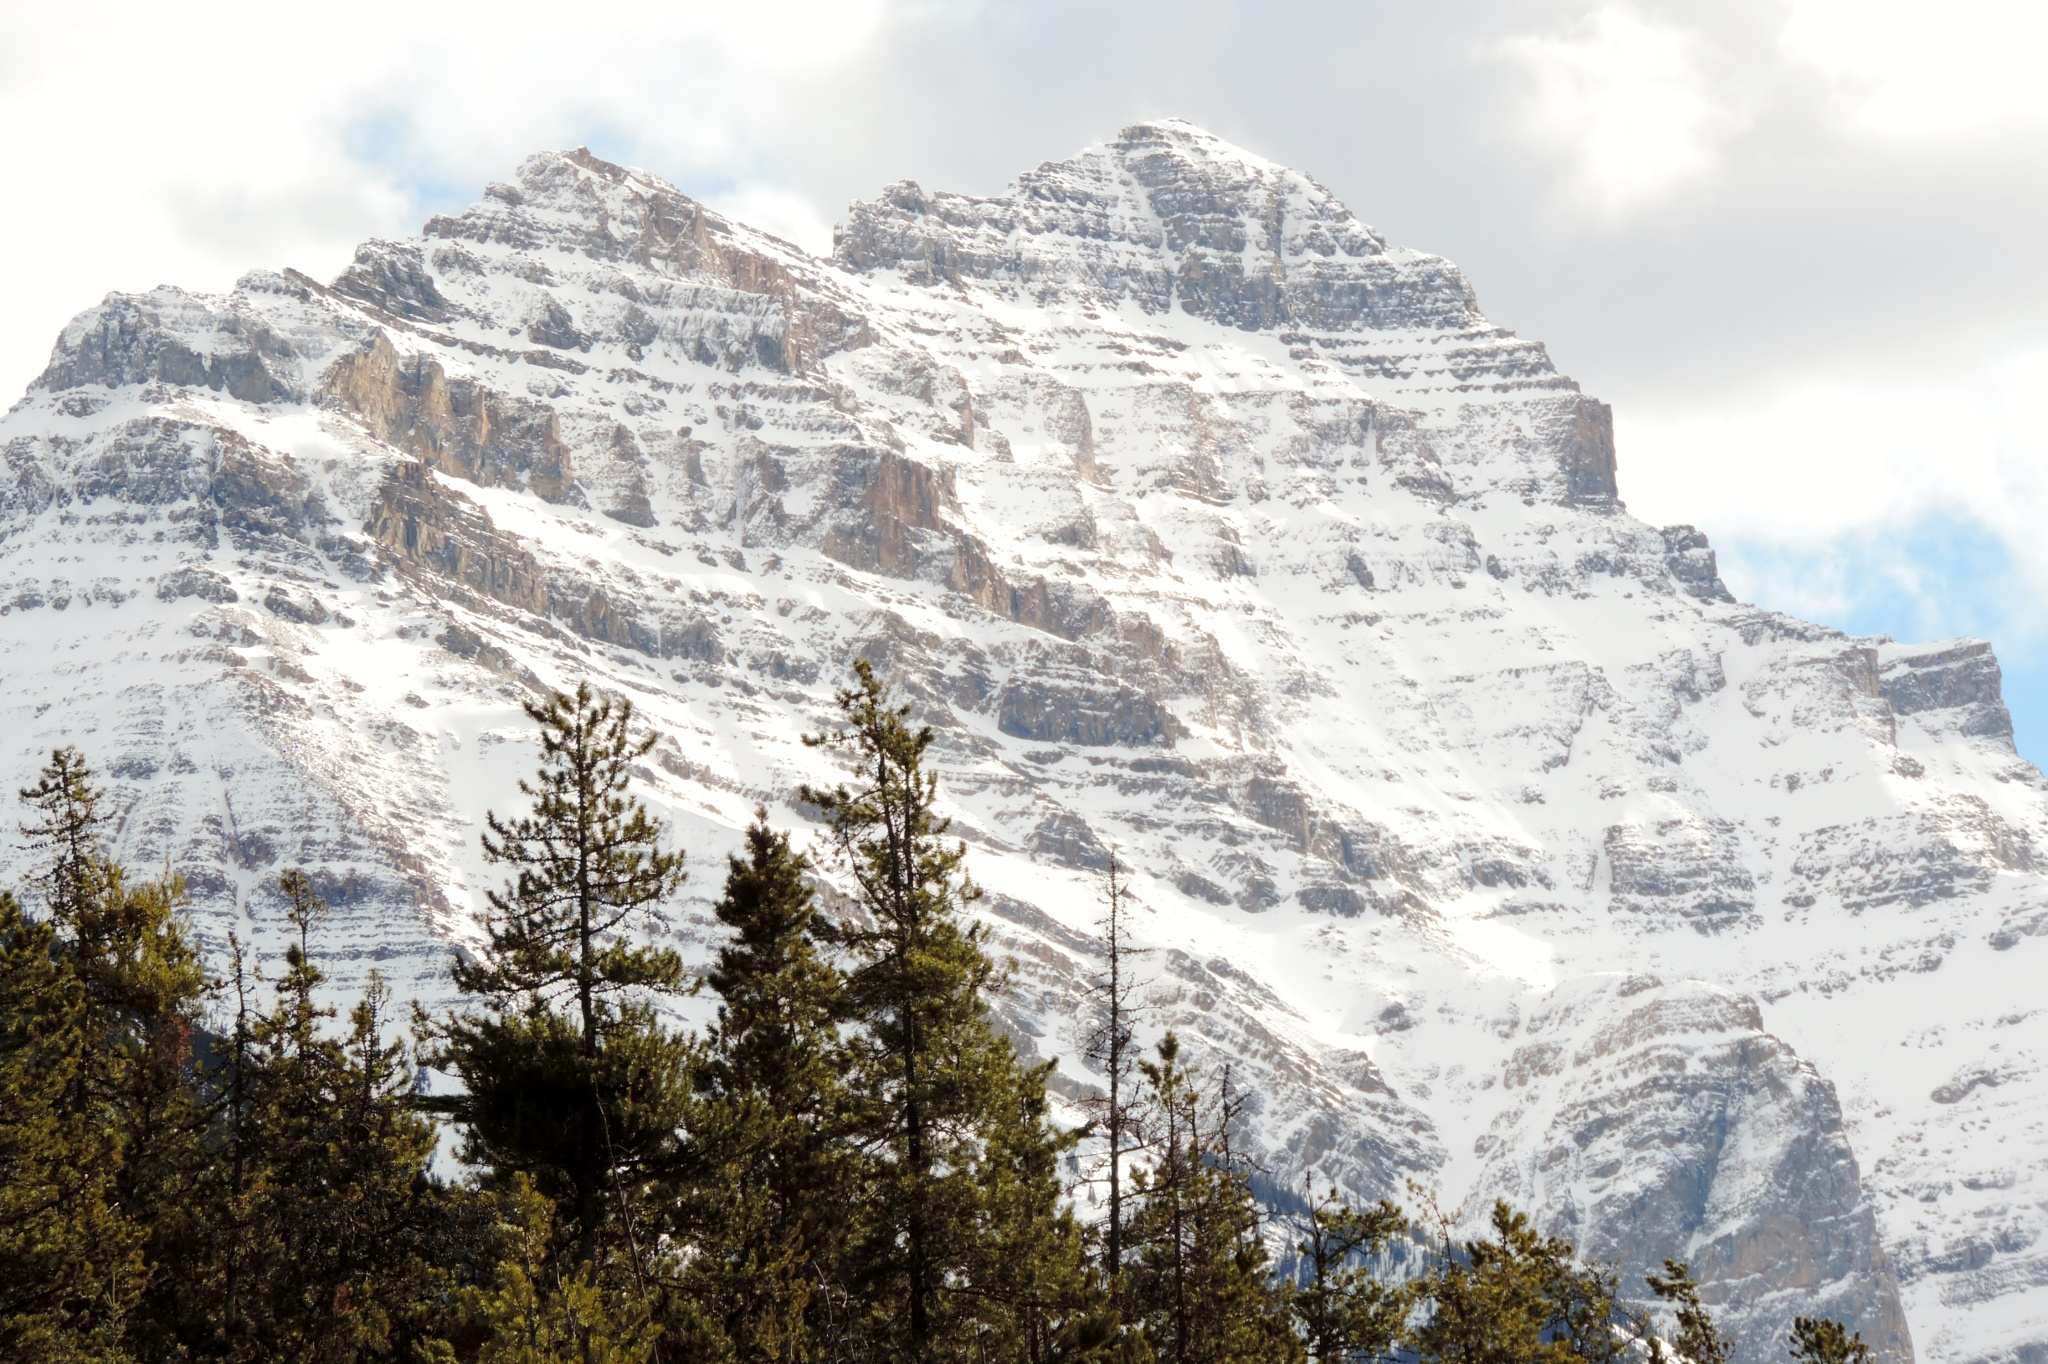 Alberta Mountain by boop_51